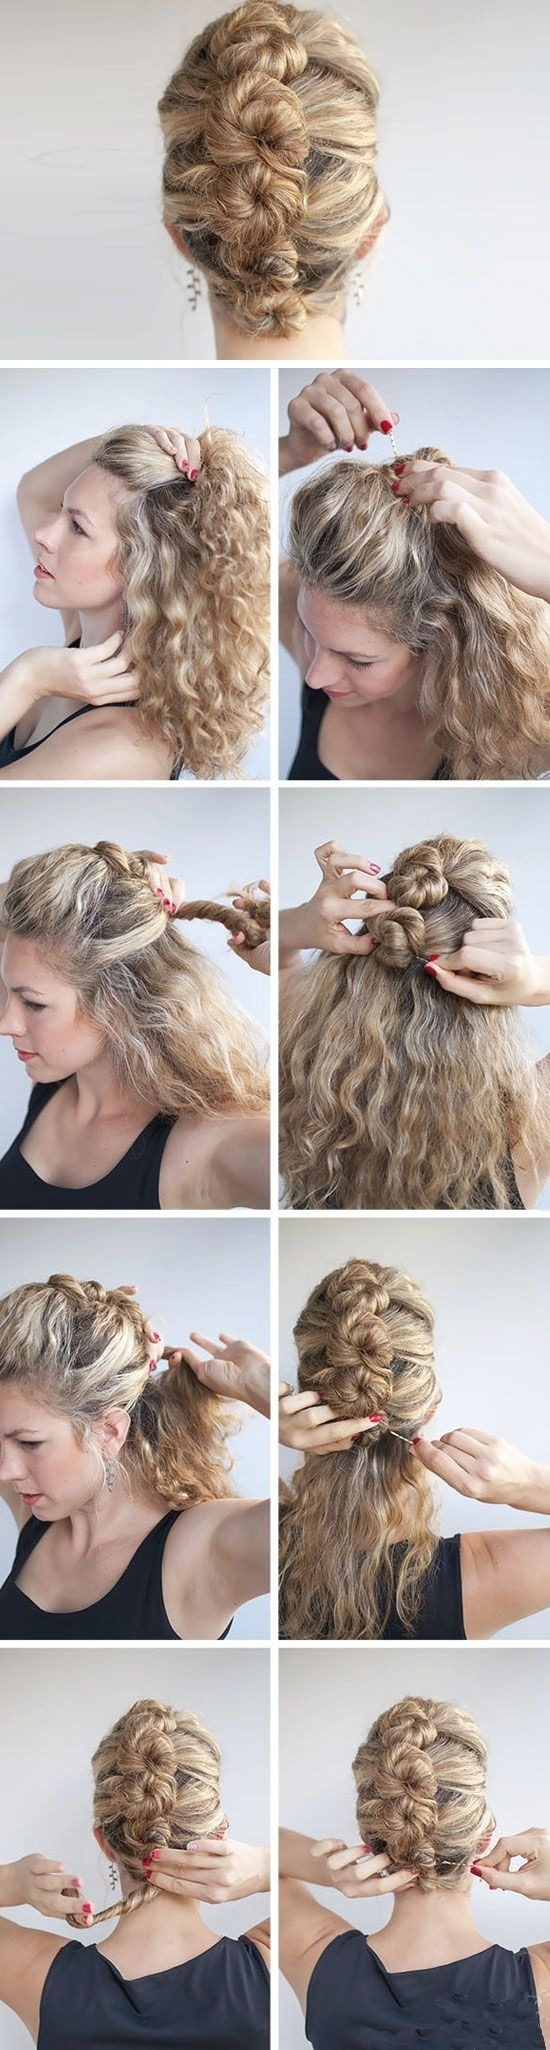 Best ideas about DIY Wedding Hairstyles For Long Hair . Save or Pin Diy Wedding Hairstyles For Medium Hair Now.